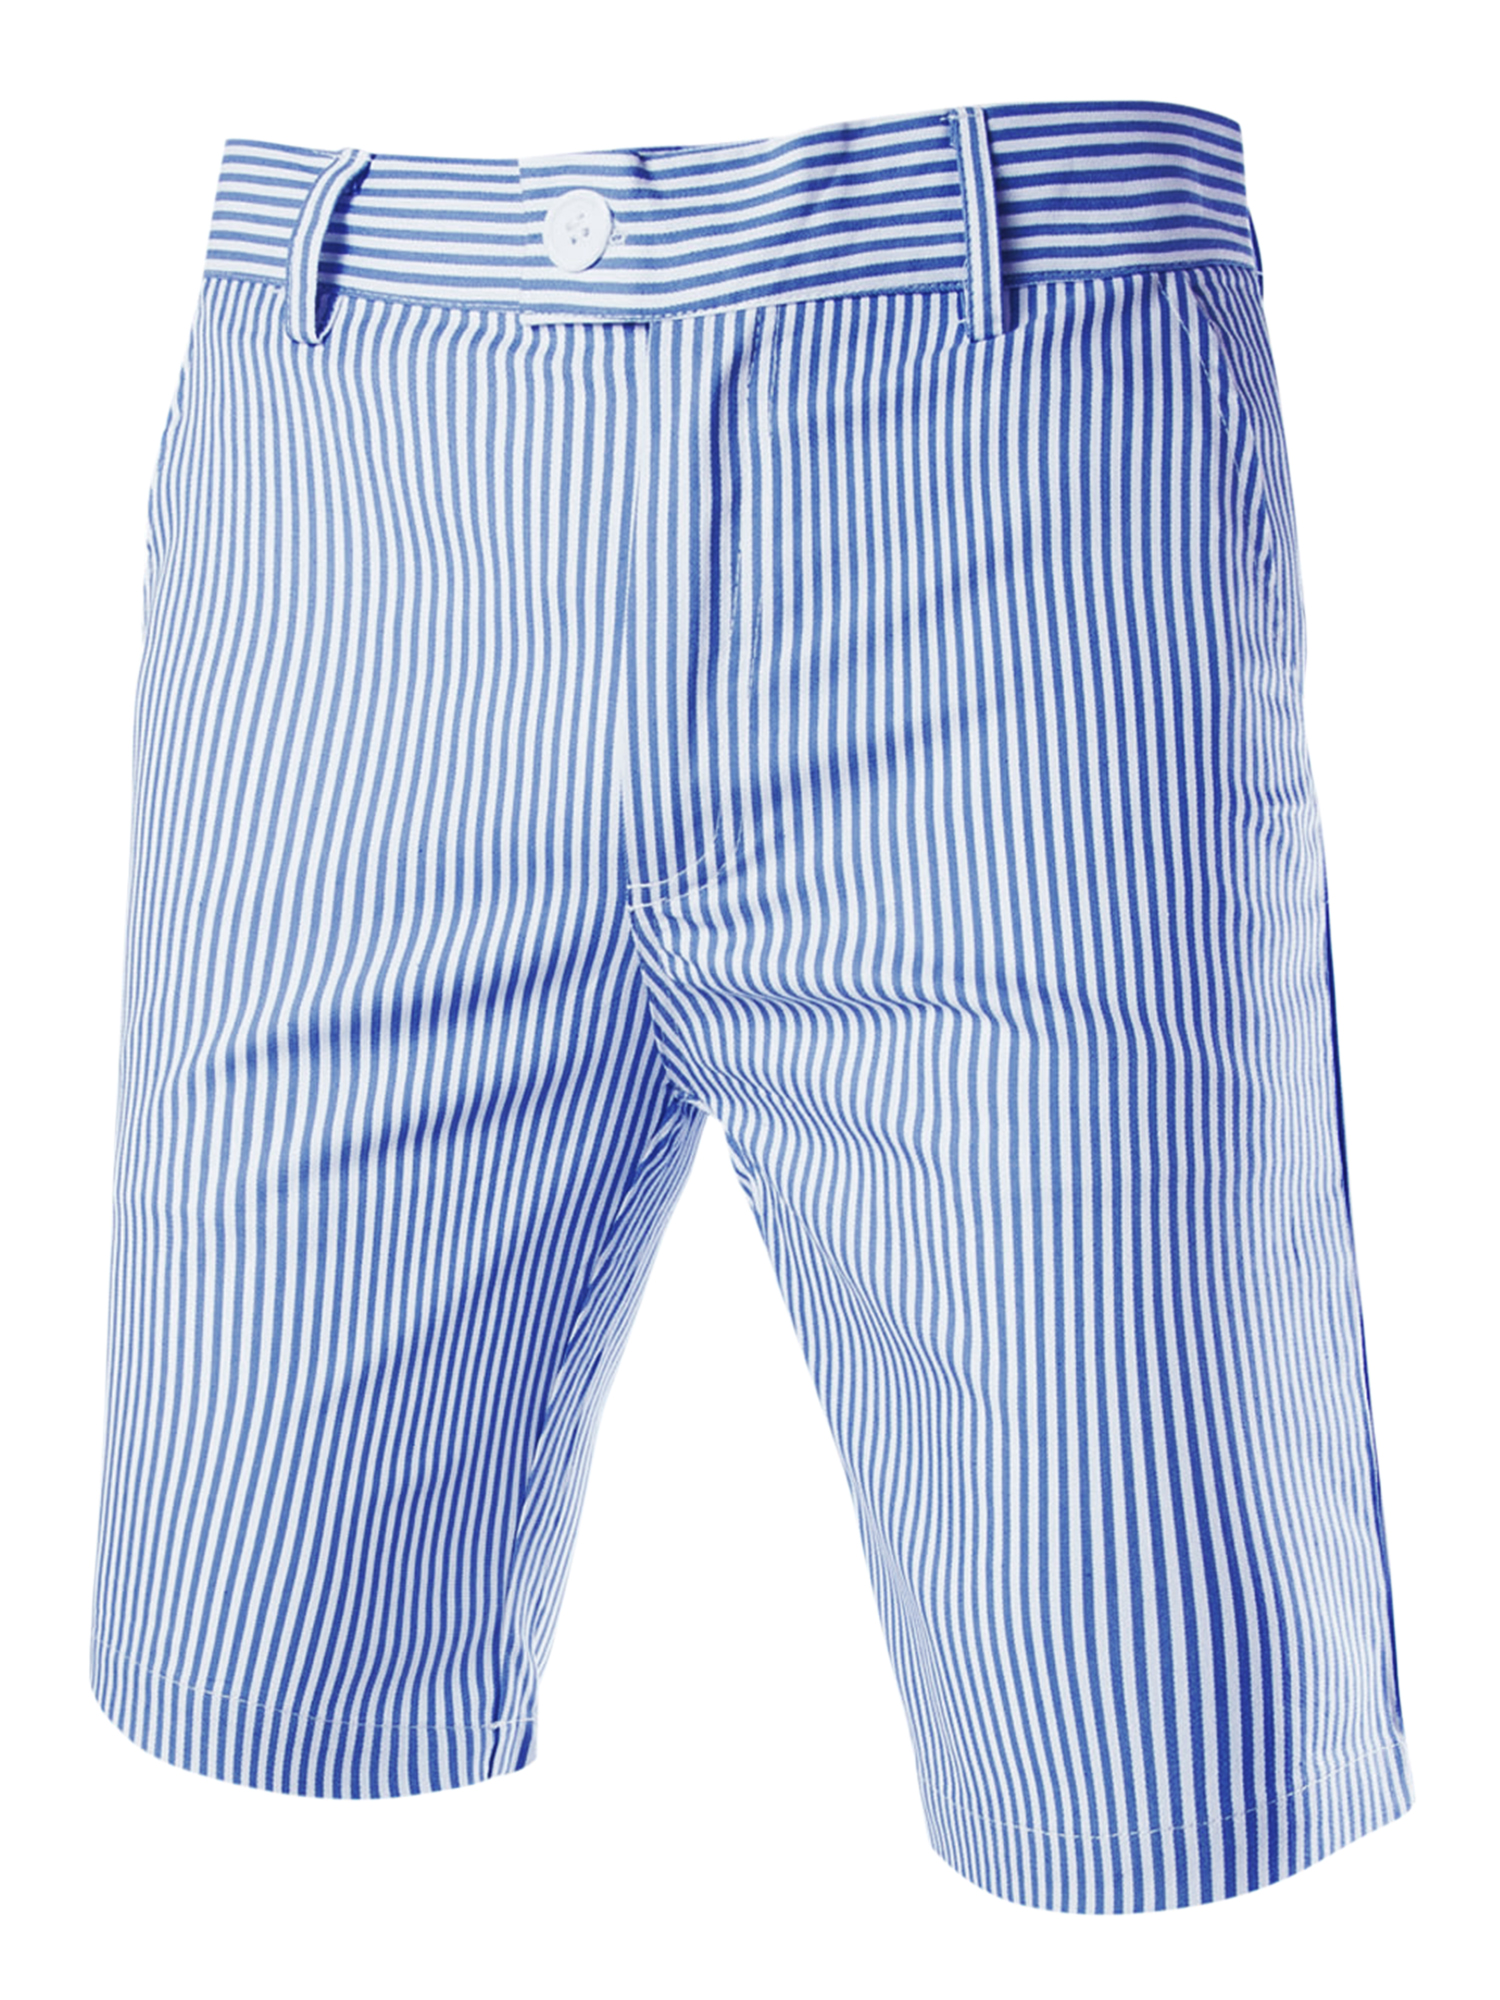 Men Vertical Stripes Straight Leg Mid Rise Chino Shorts Blue White W36